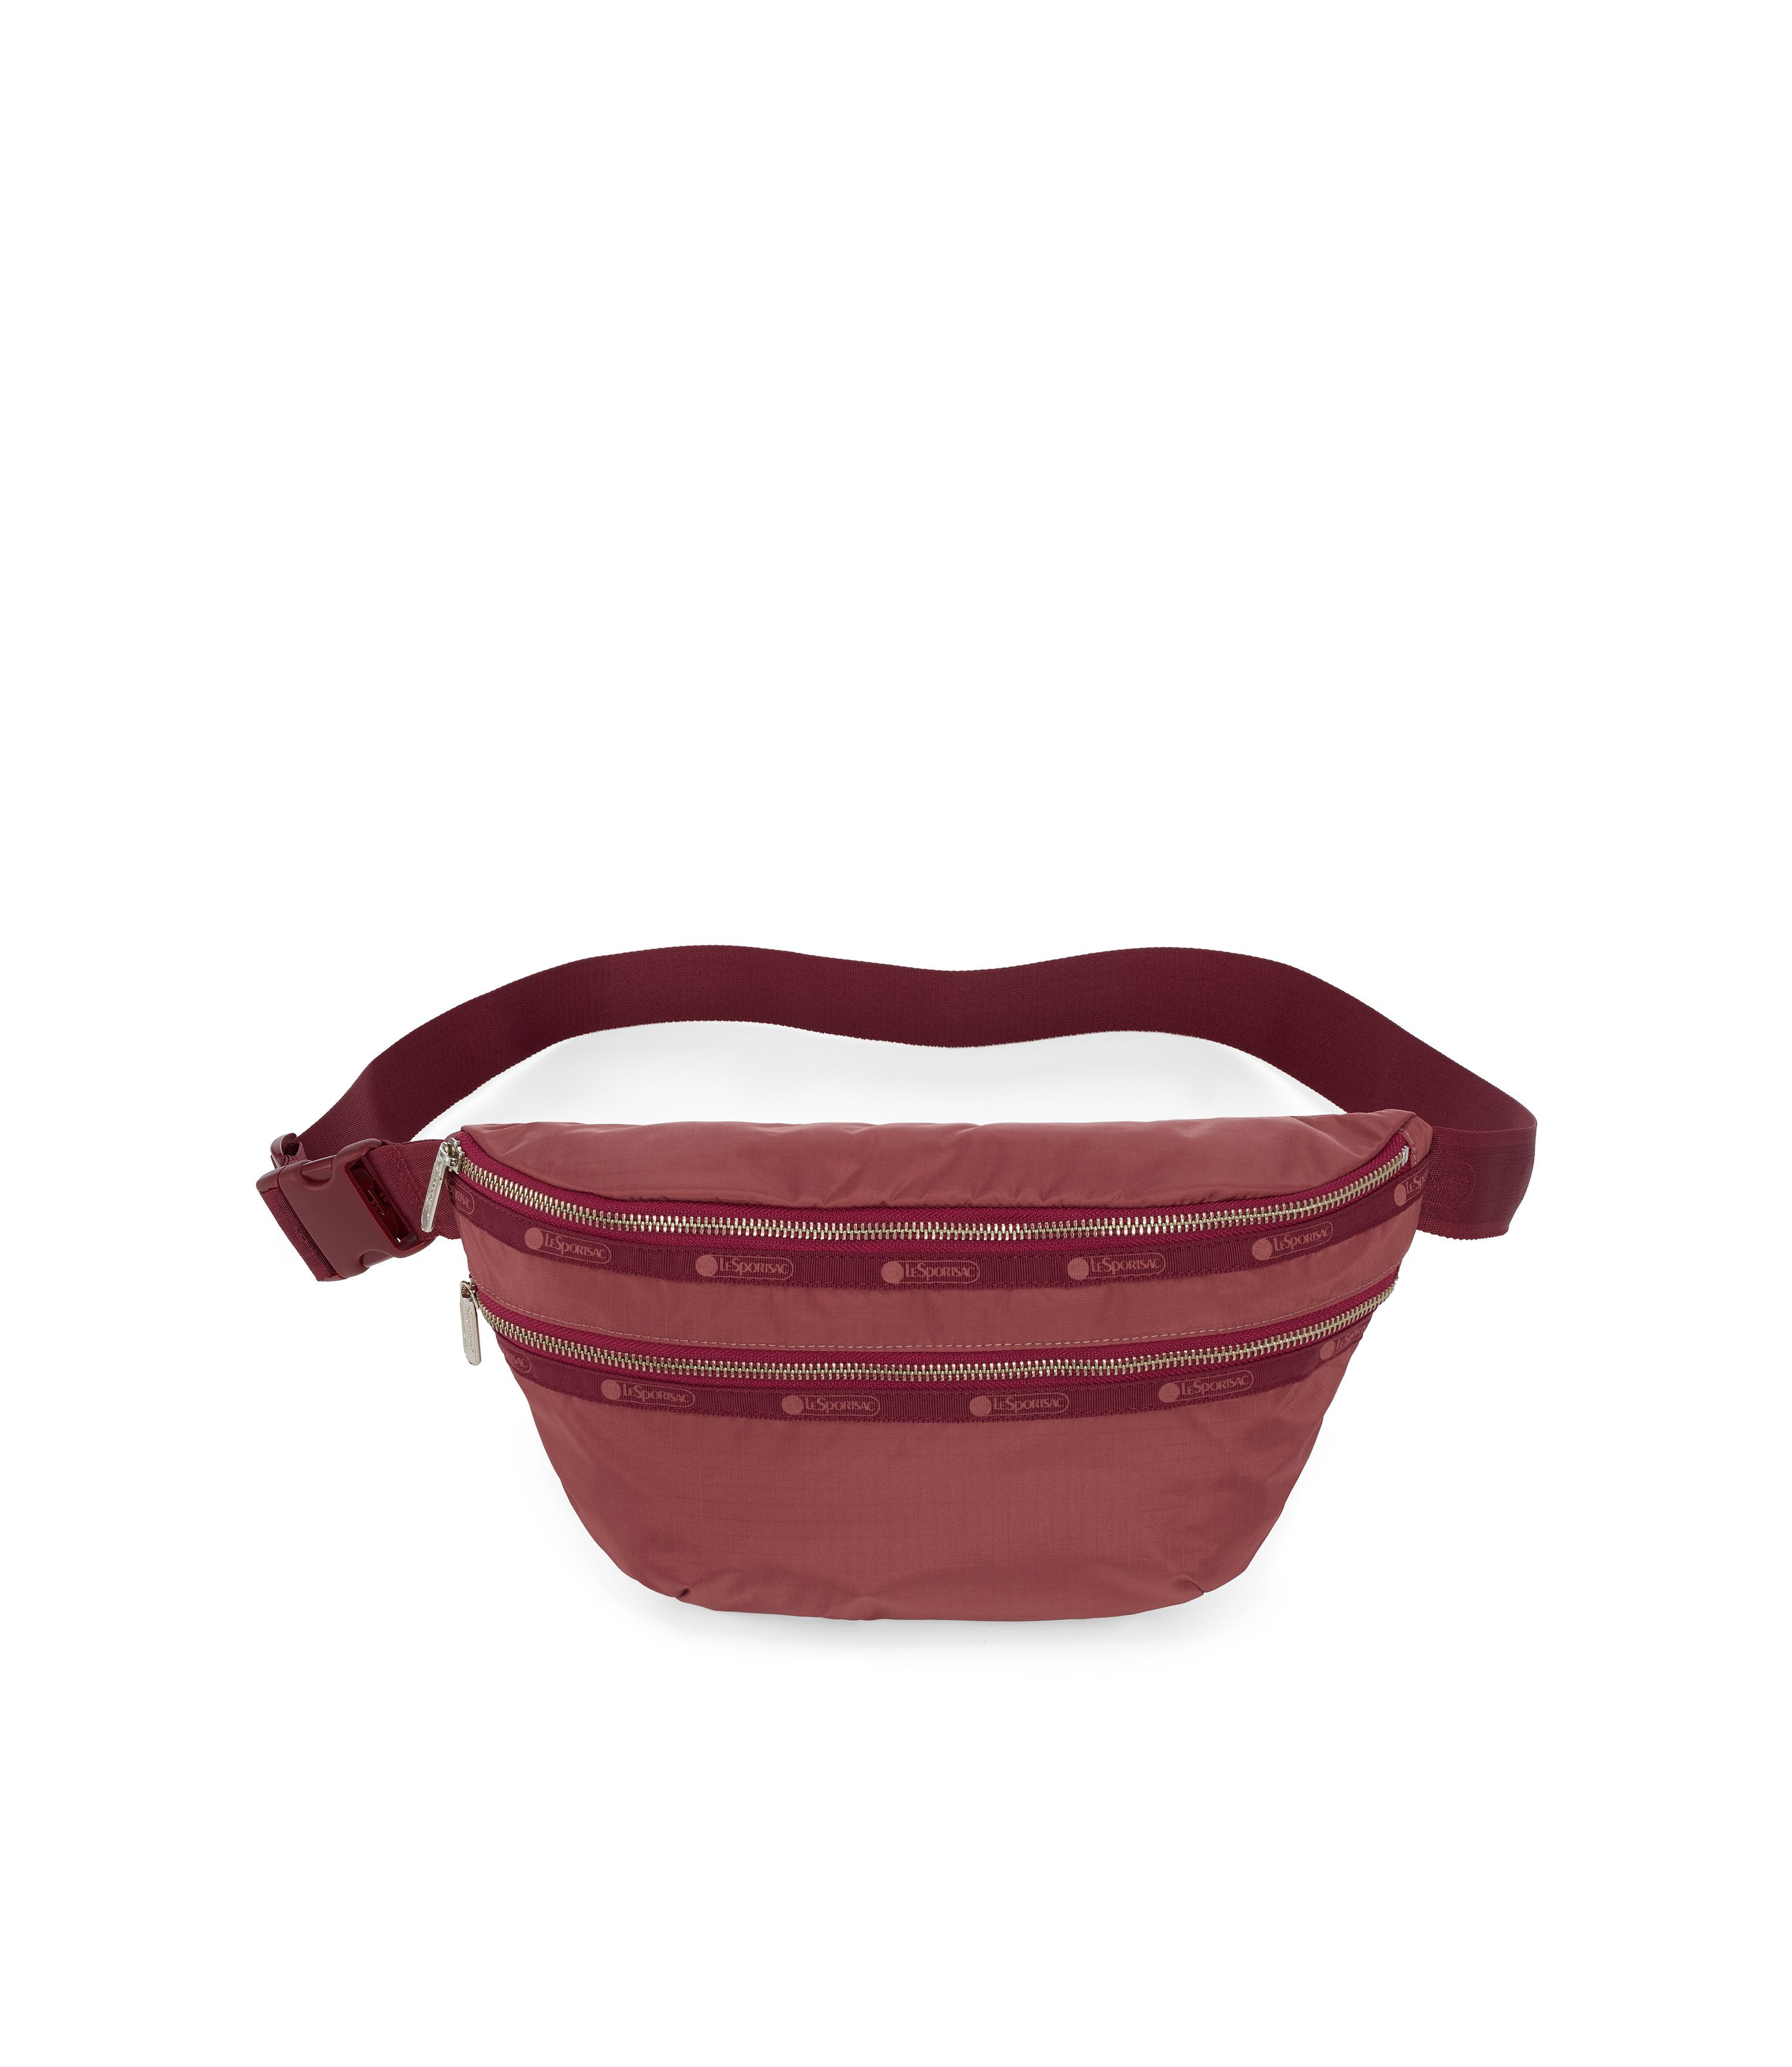 Heritage Belt Bag, Accessories, Makeup and Cosmetic Bags, LeSportsac, Heritage Rouge